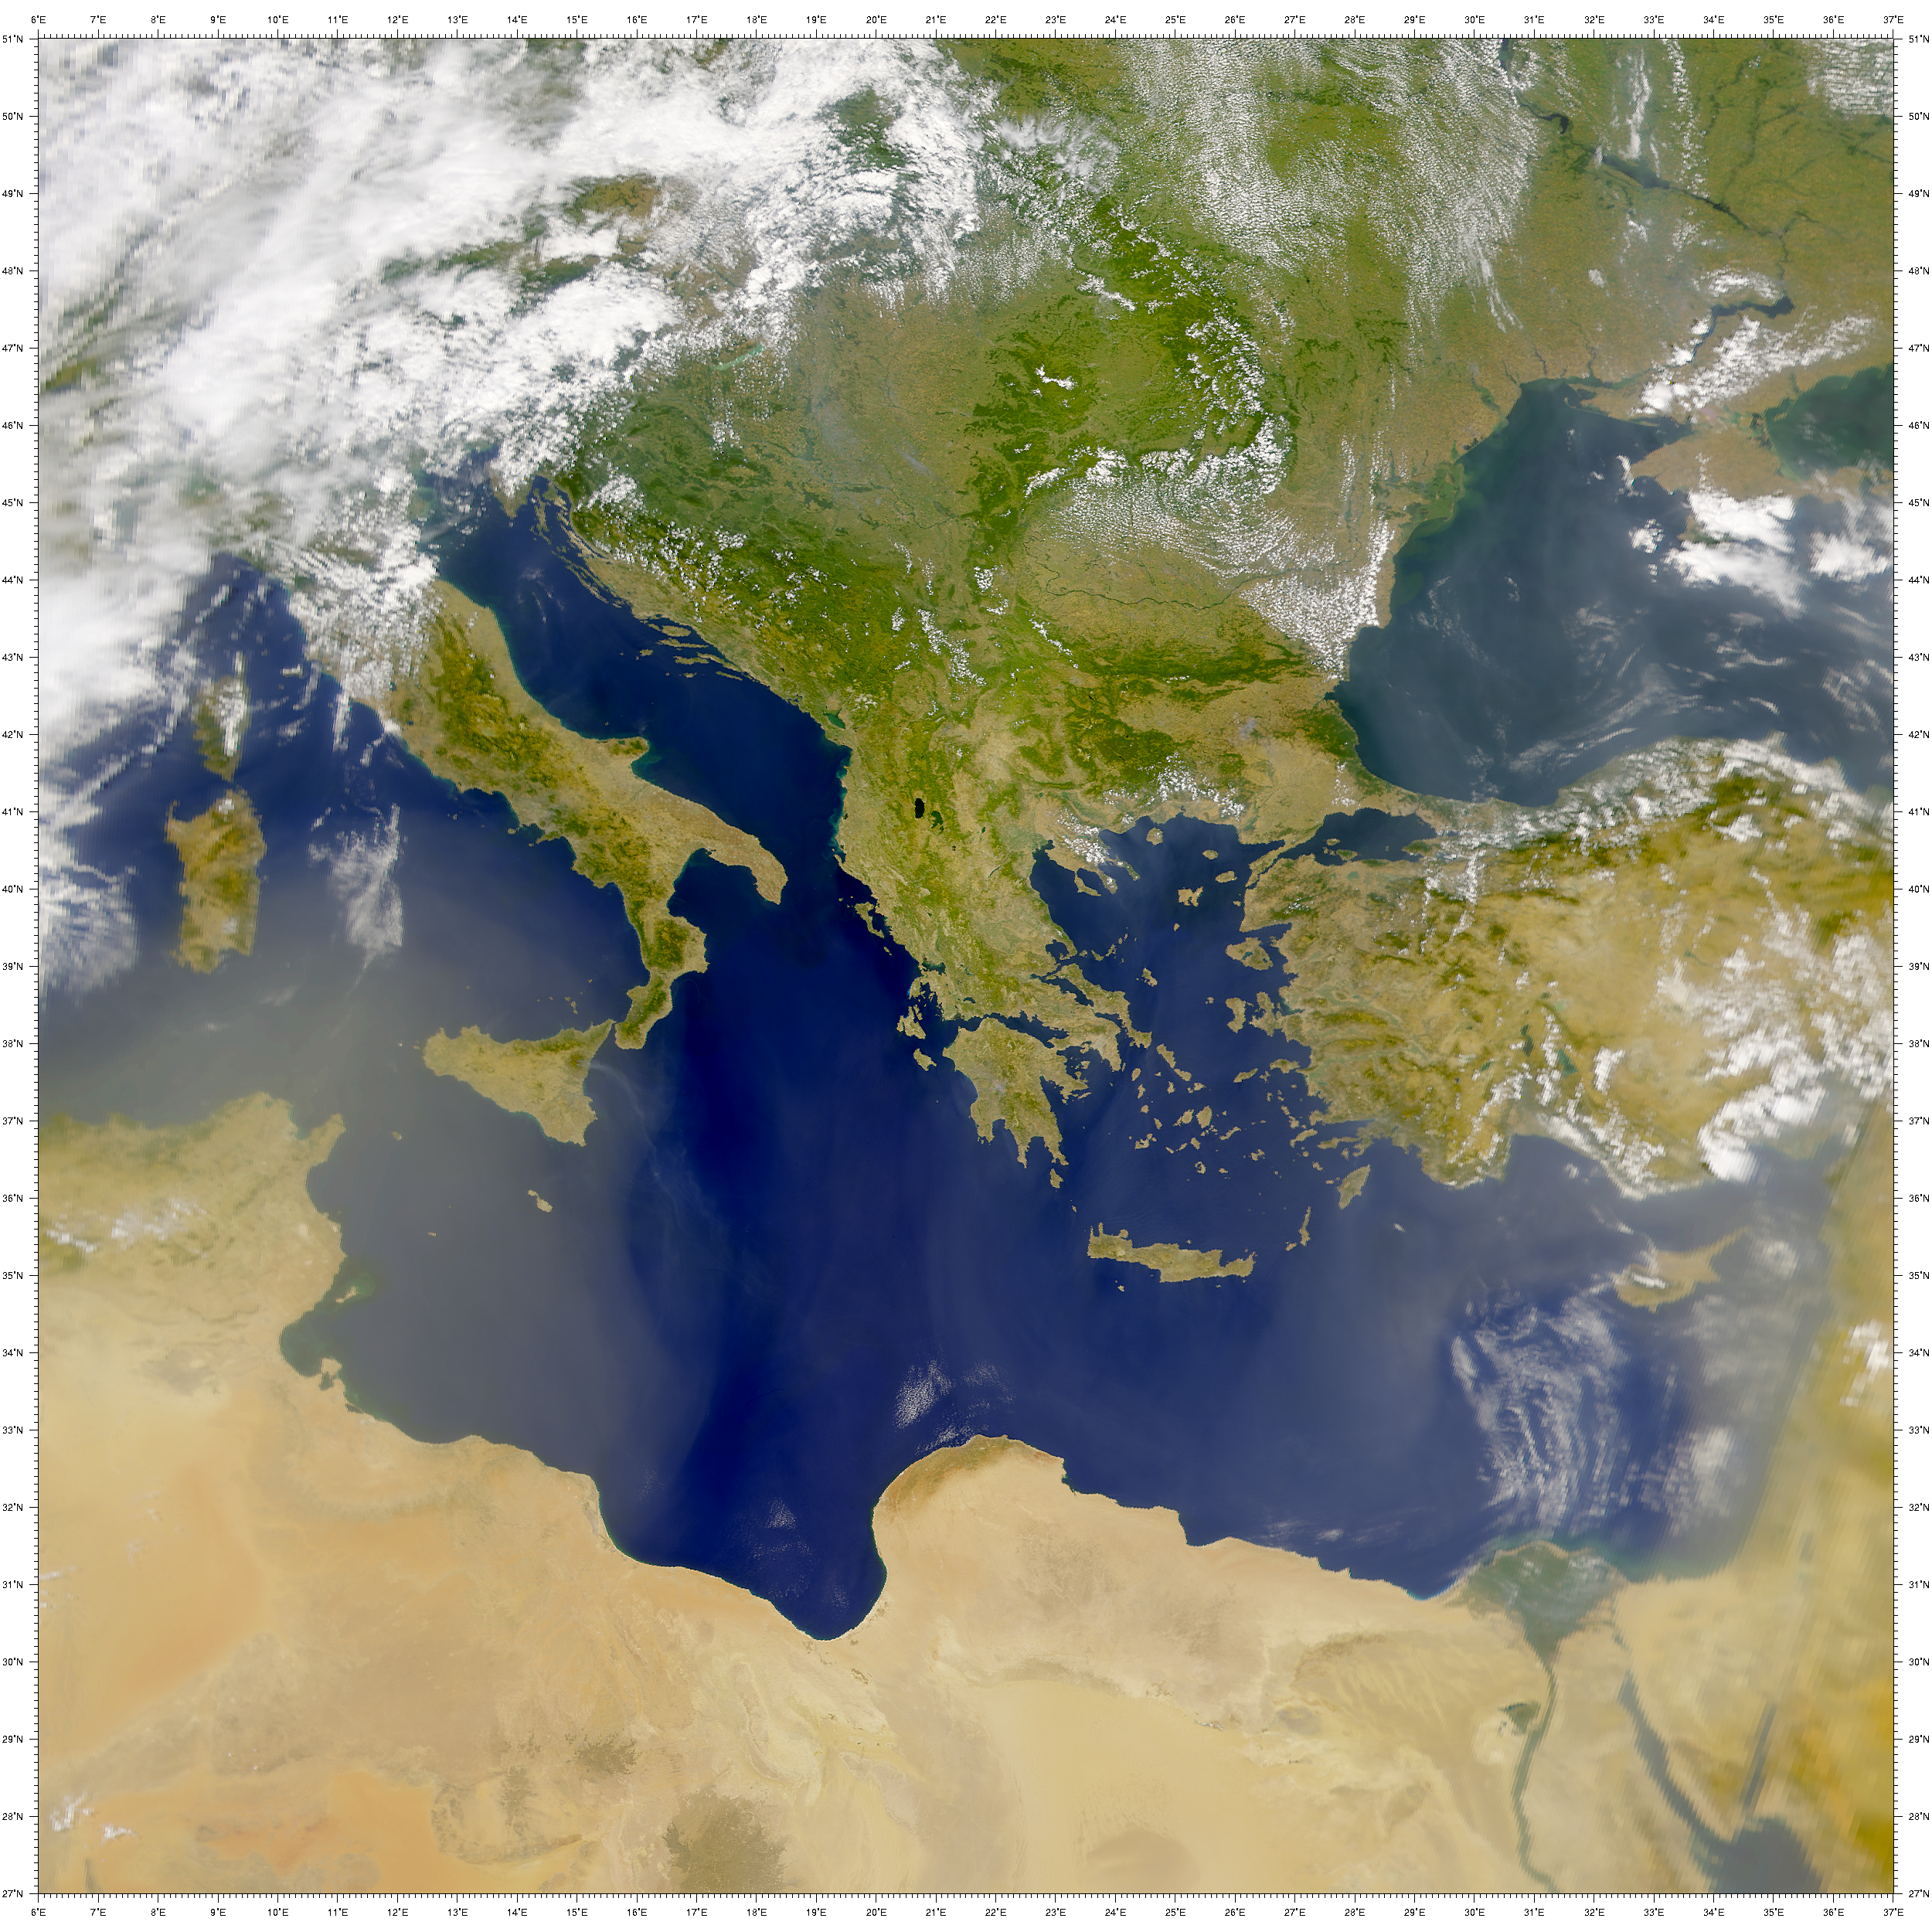 NASA Visible Earth: SeaWiFS: Hazy Eastern Mediterranean